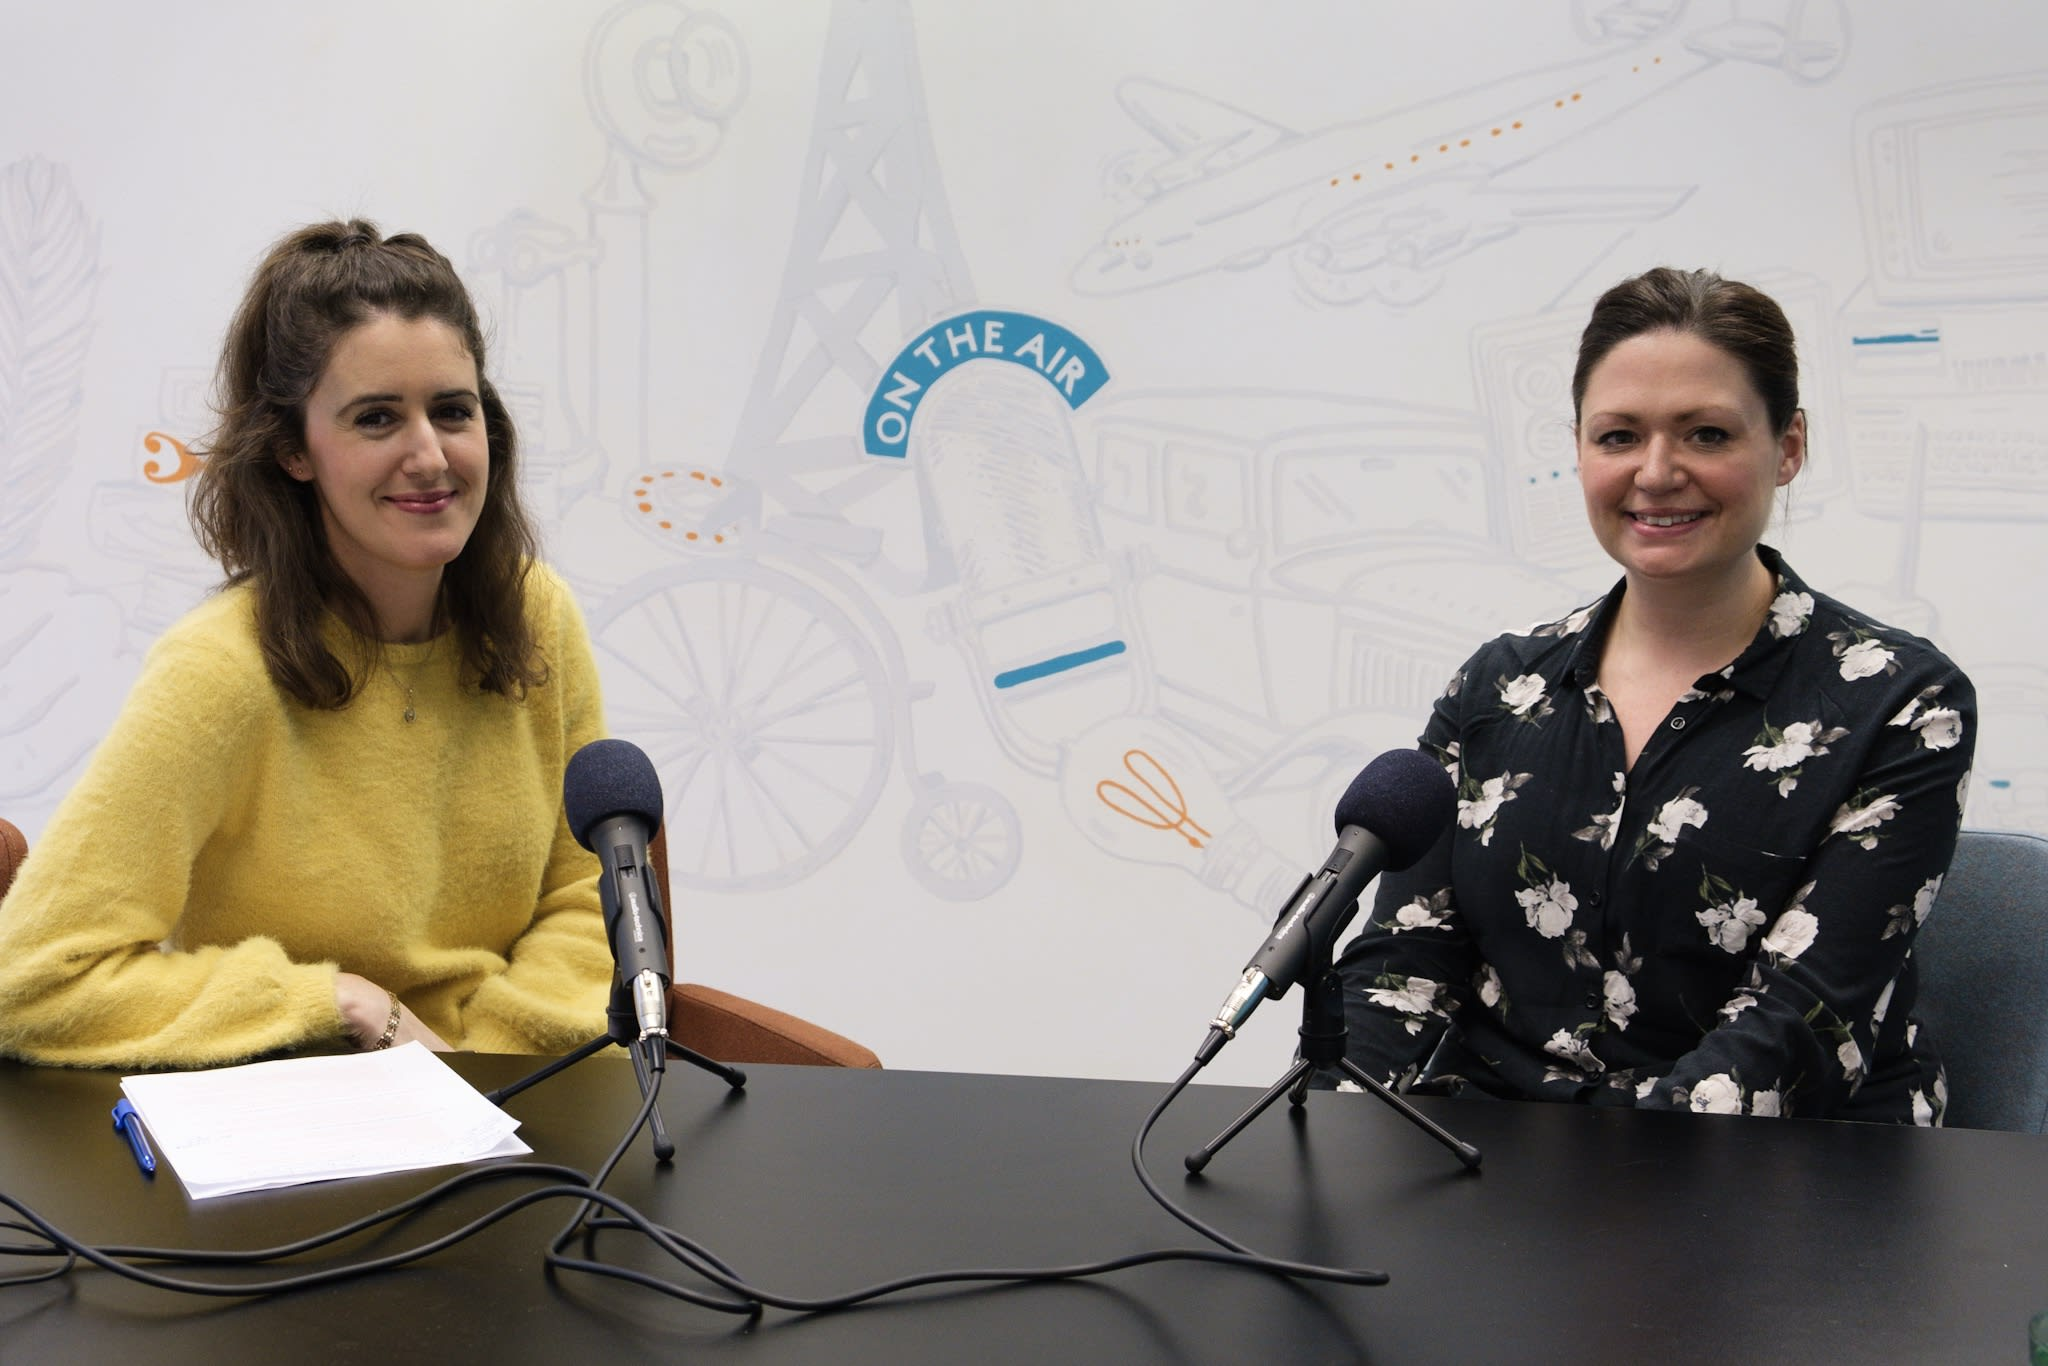 Awin Talks: Interview with Genie Goals and introducing our influencer expert